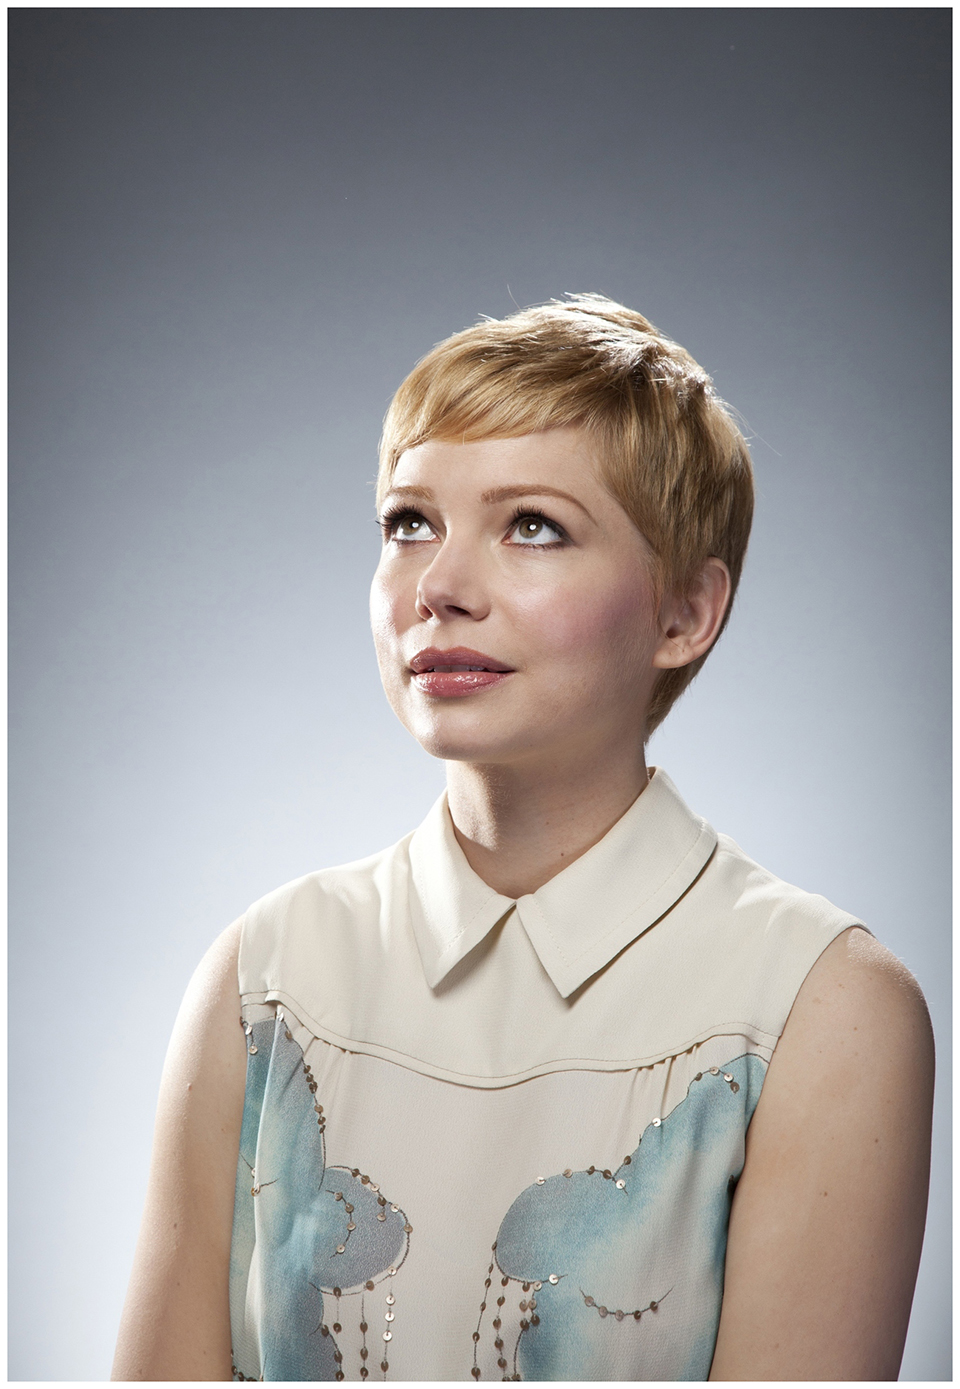 michelle williams photographed by douglas kirkland for 2011 academy award nominee on february 2 2012 Douglas Kirkland Took my Portrait. I still cannot believe that it actually happened!